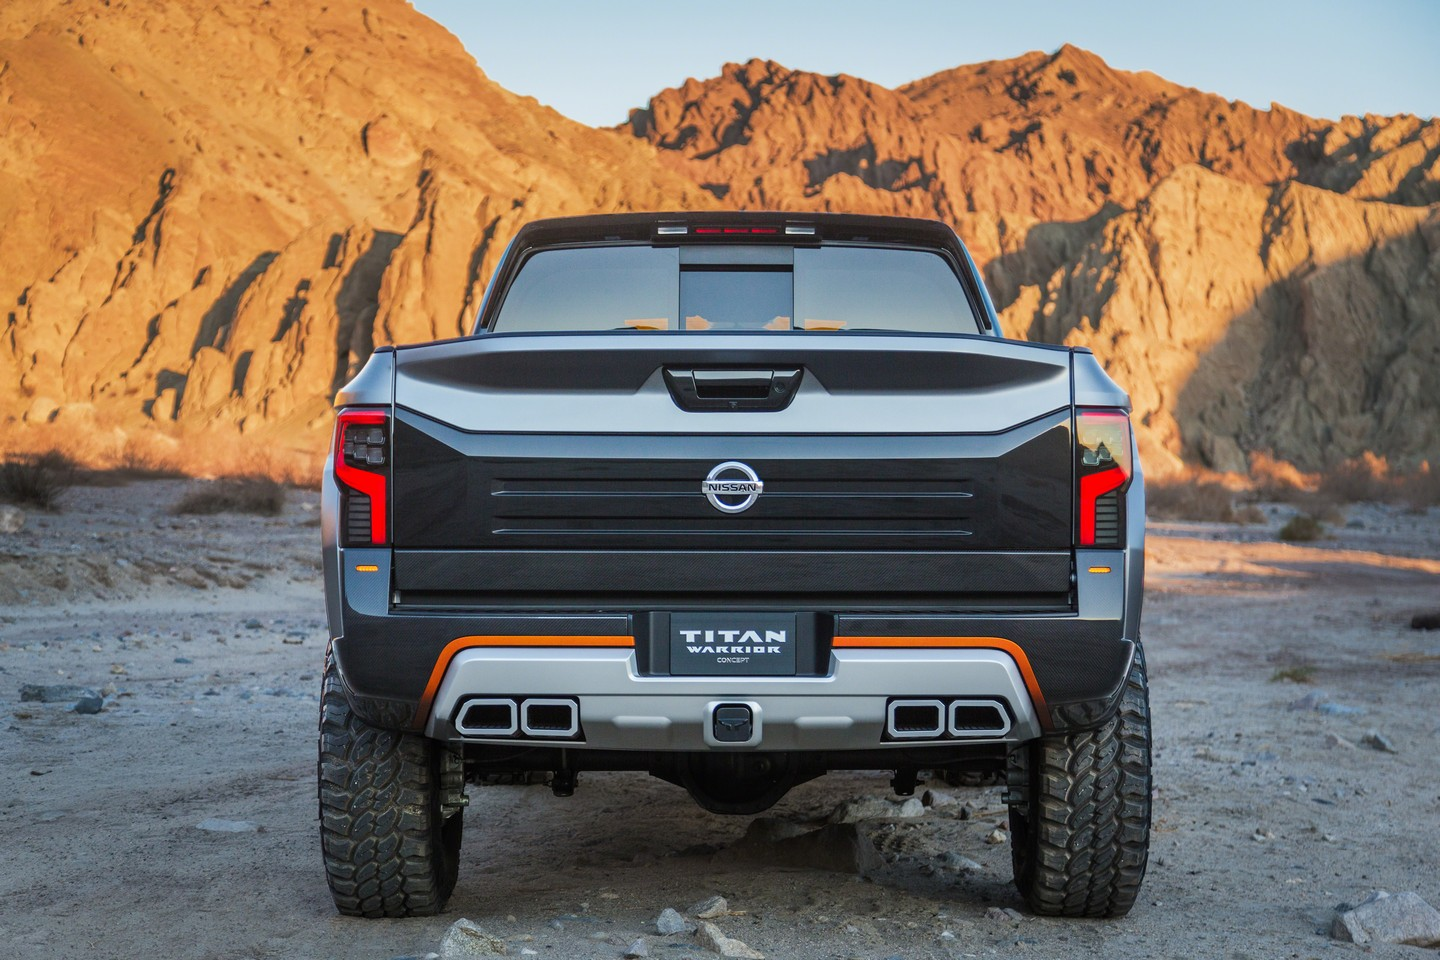 Nissan Titan photo 159692